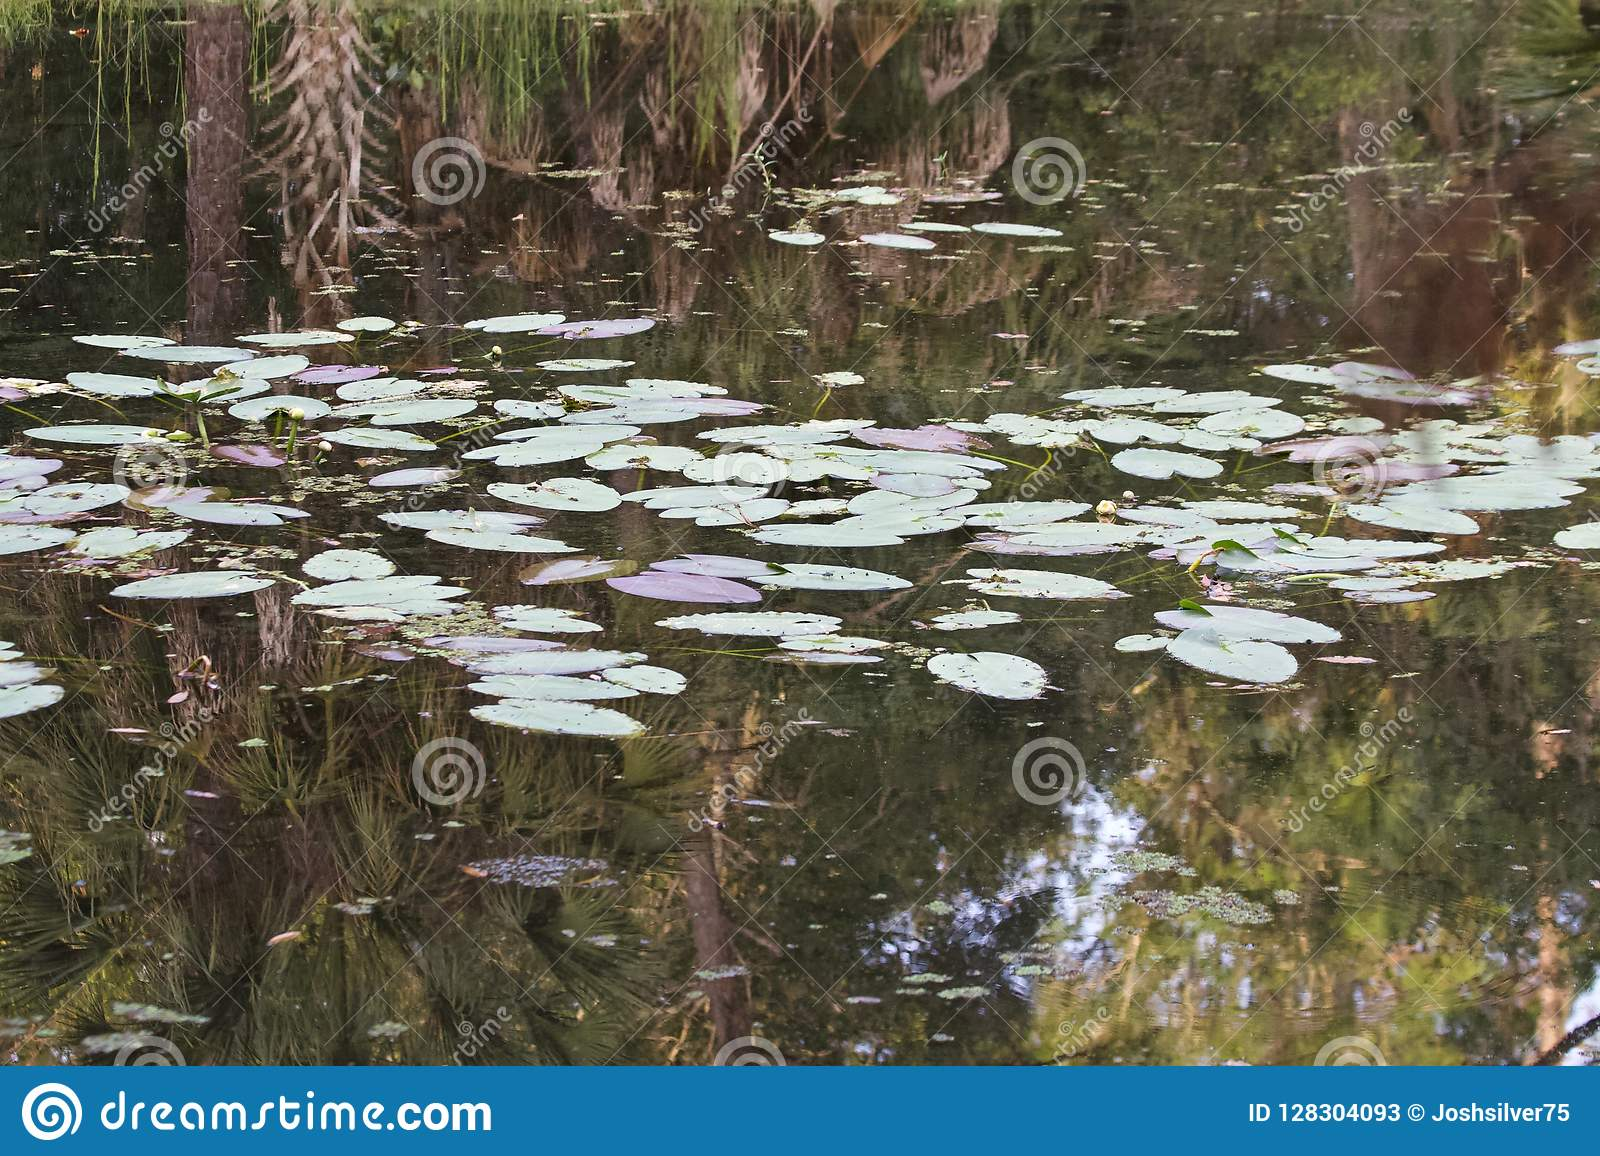 Lily pads on a pond